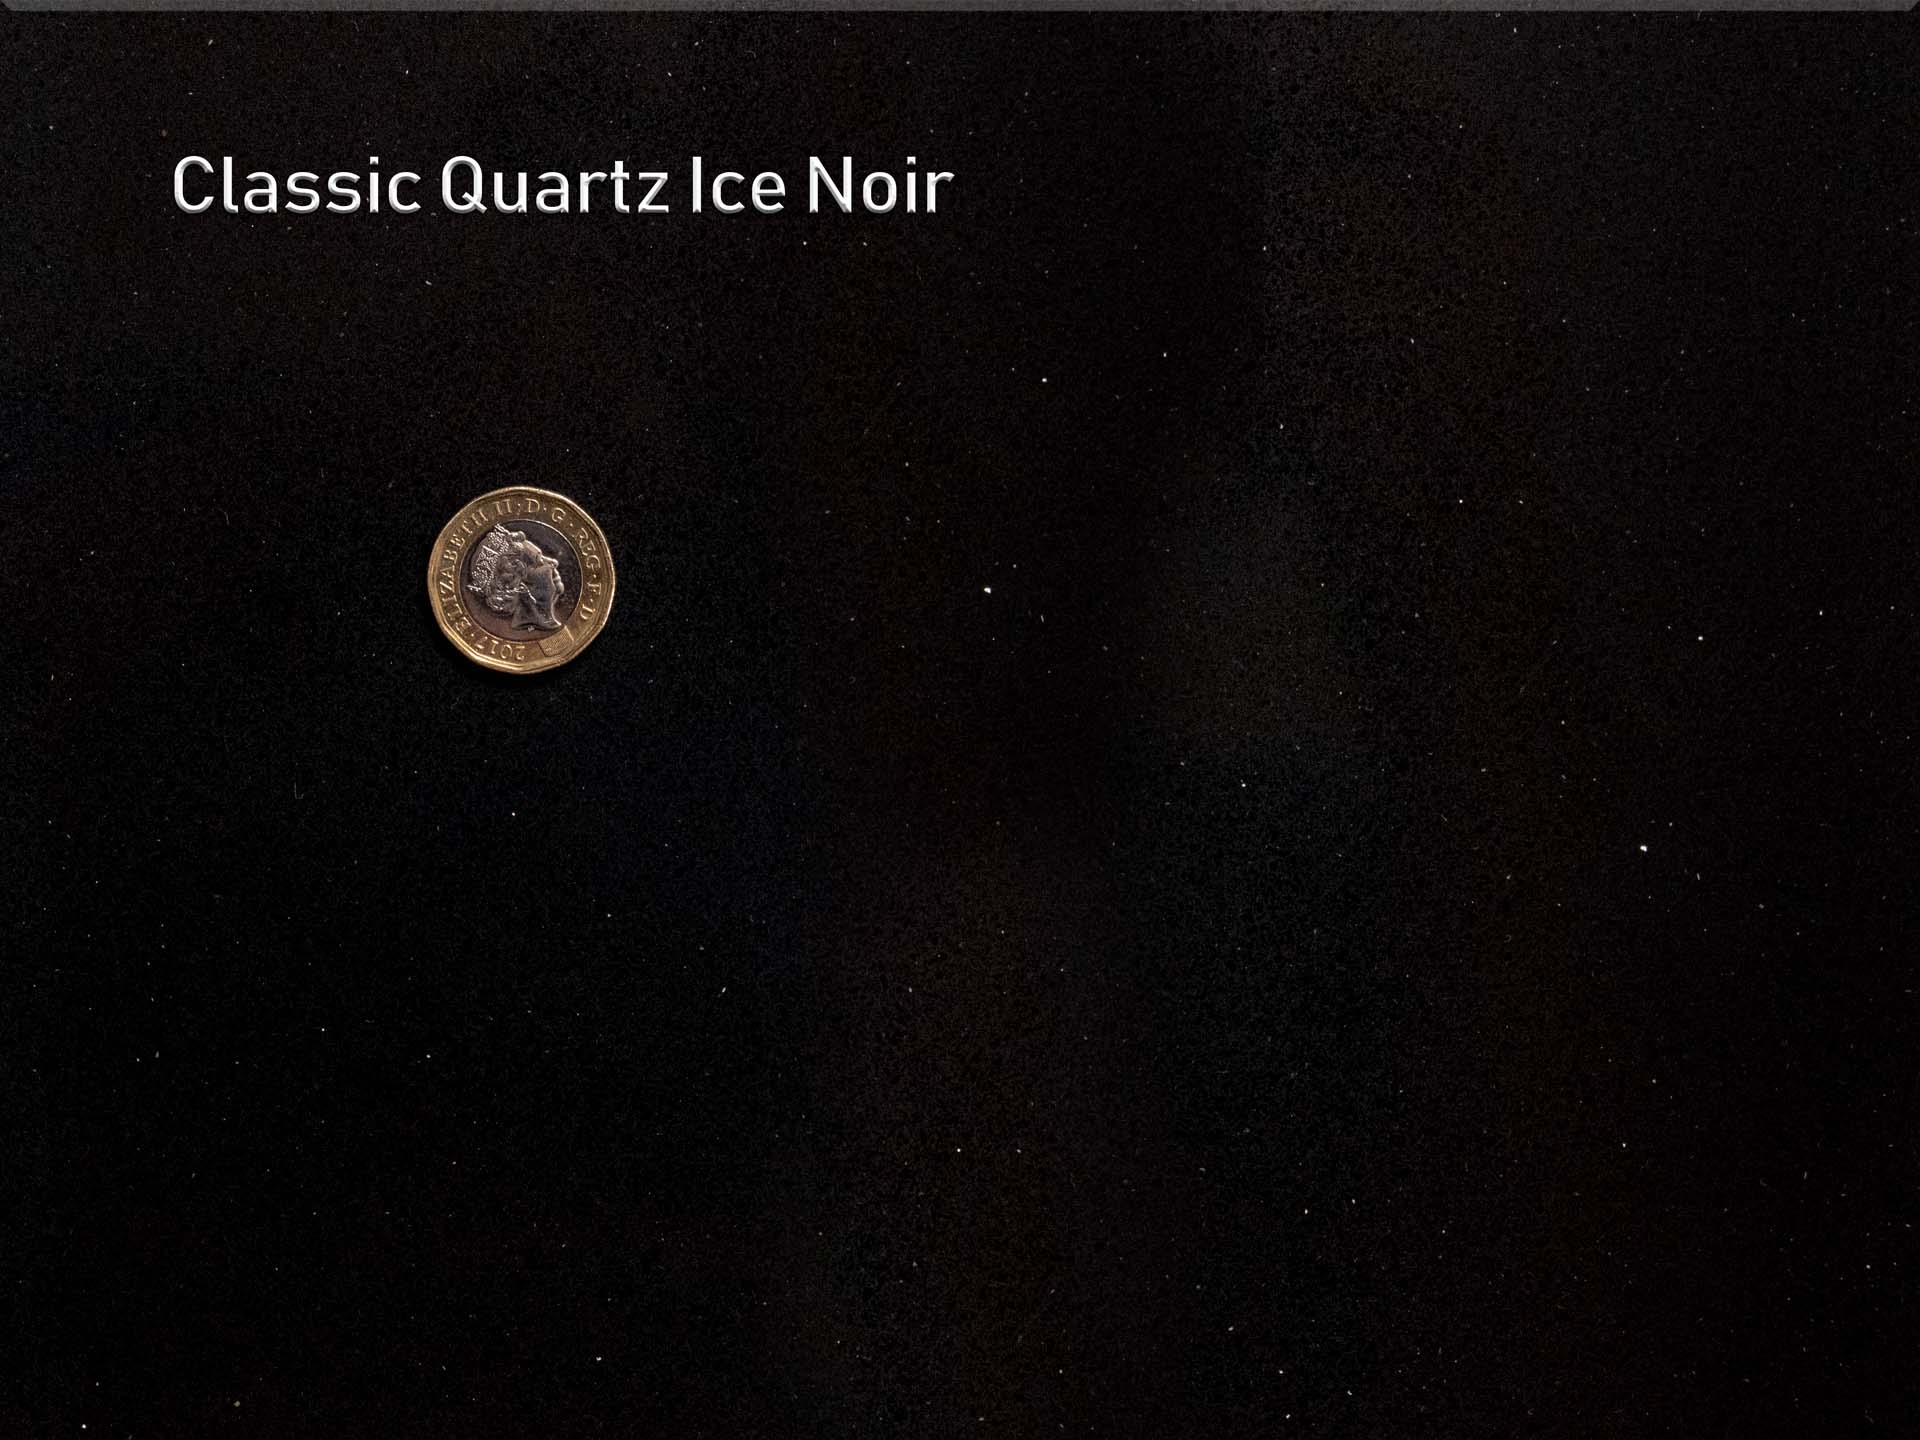 classic quartz ice noir small sparkly quartz worktops subtle special offer july 2019 164558